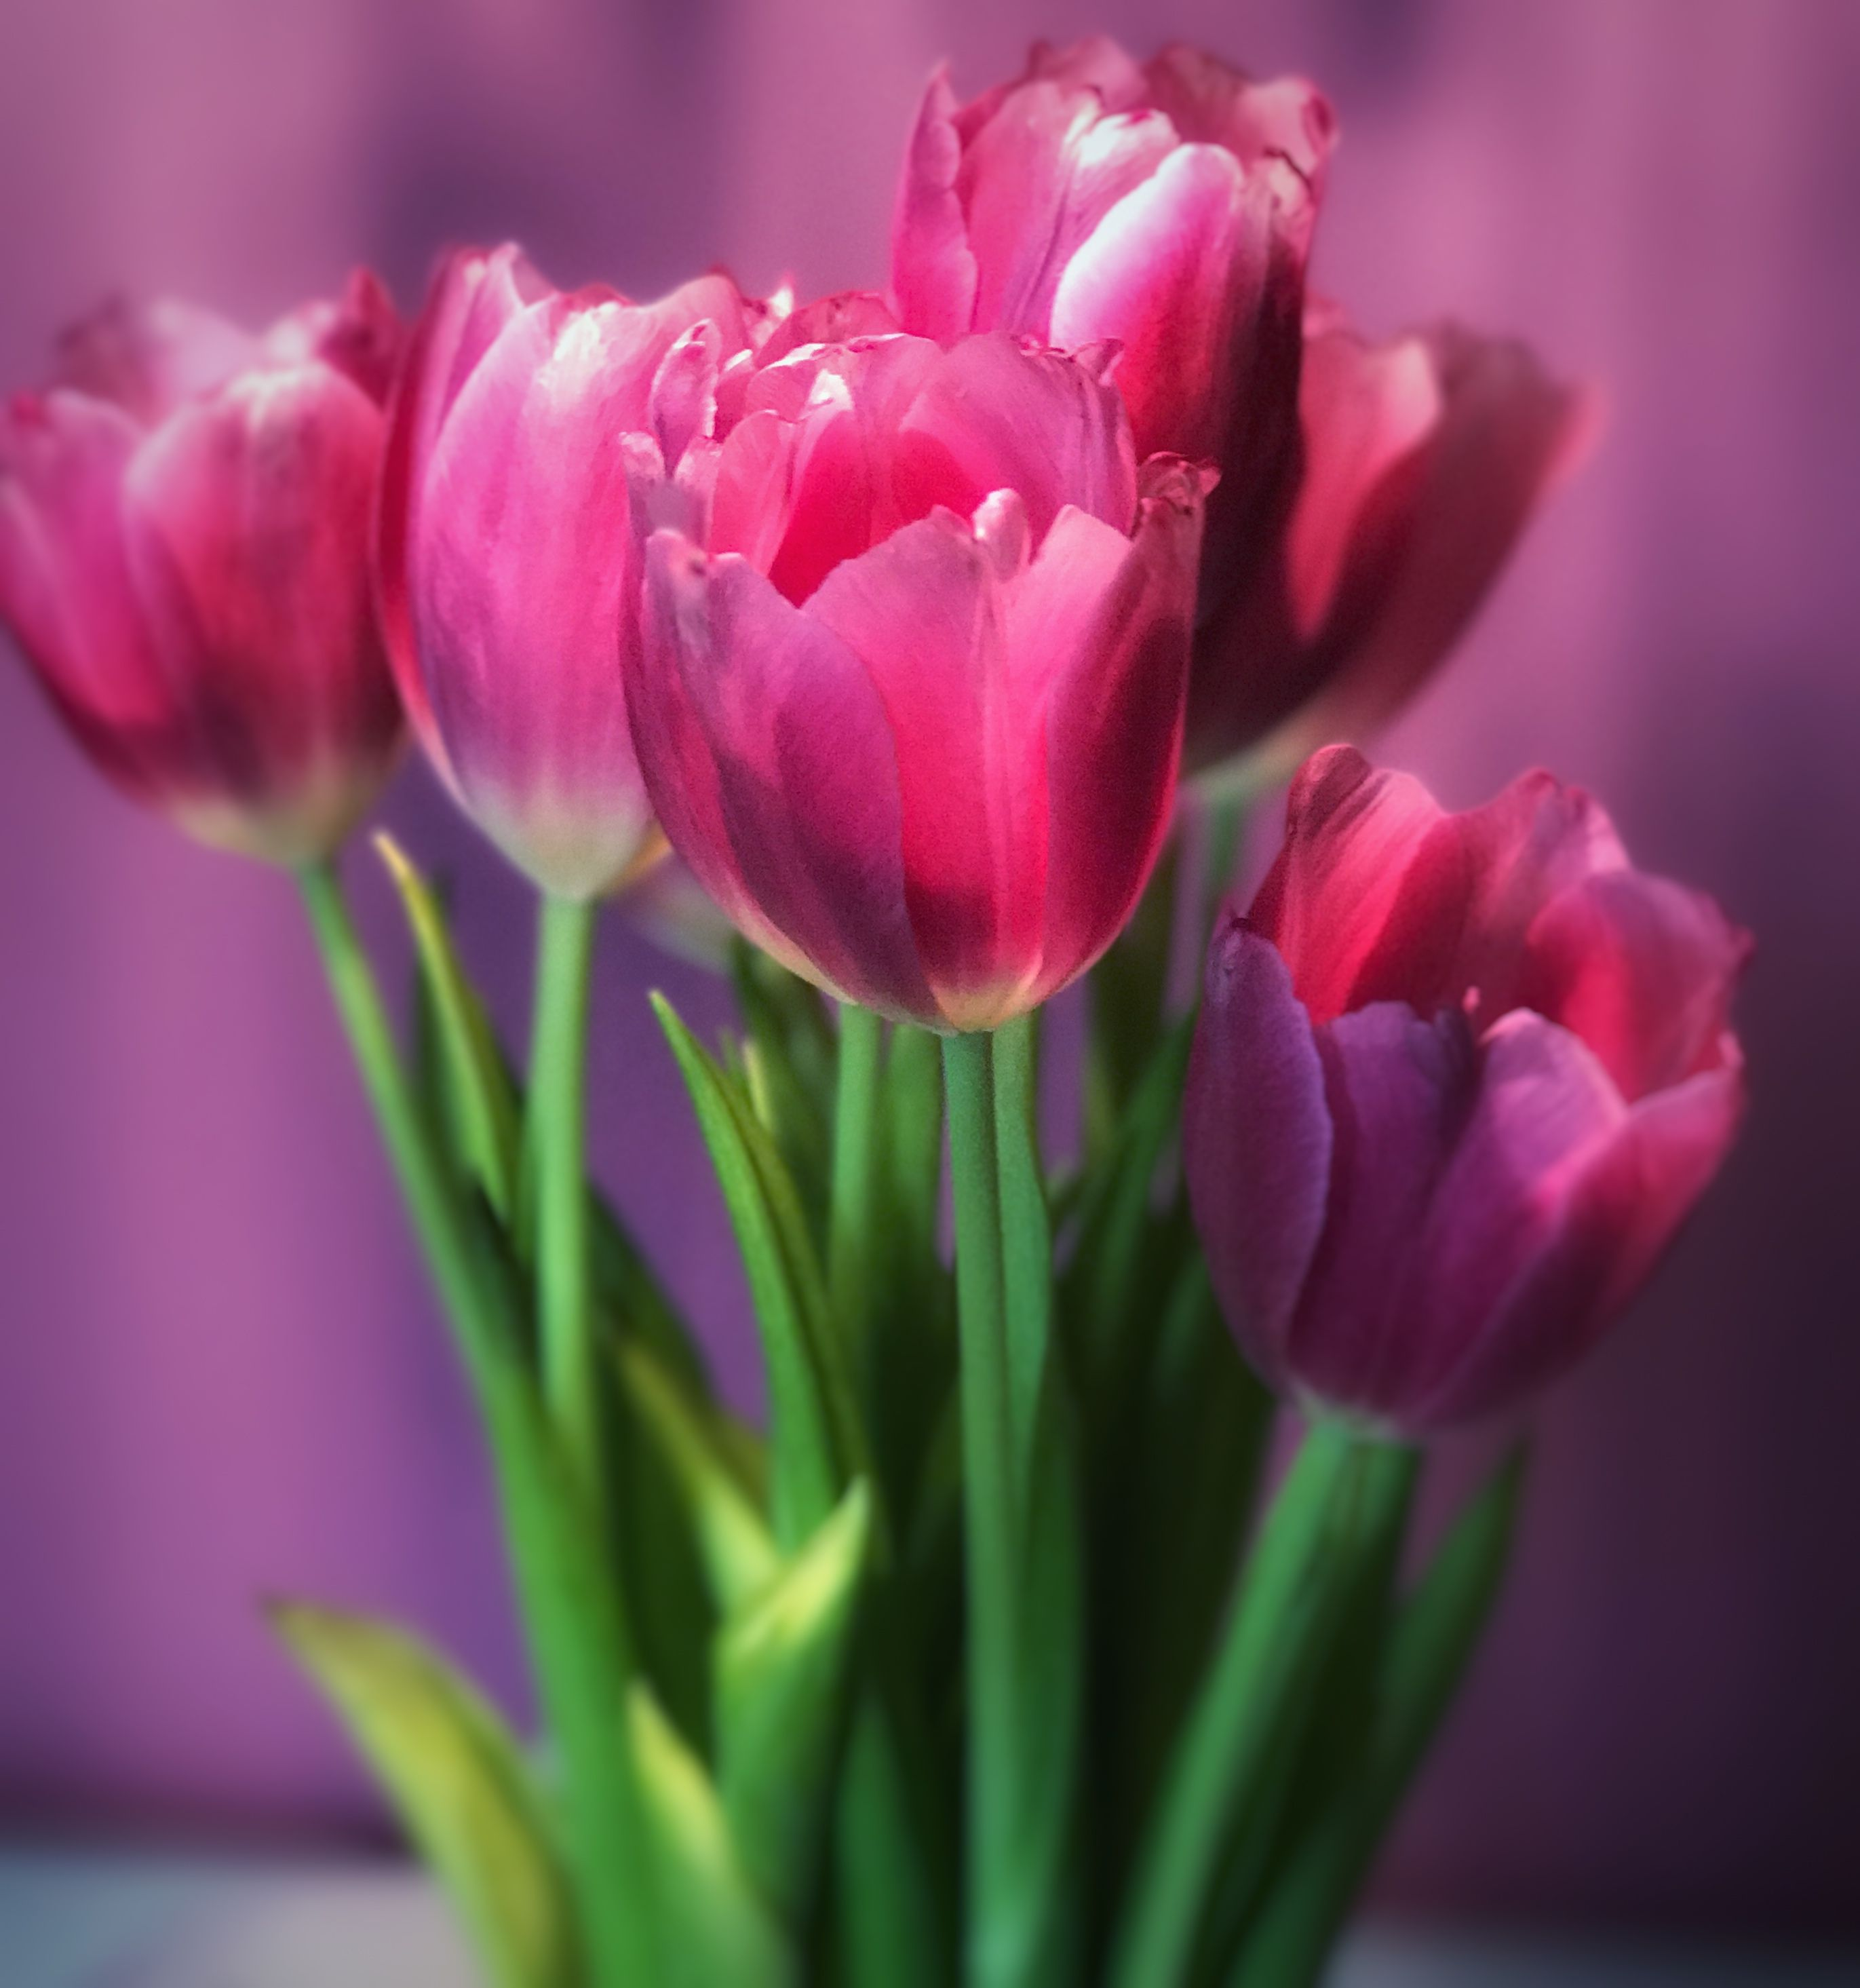 Did you know about the meaning of pink flowers? They